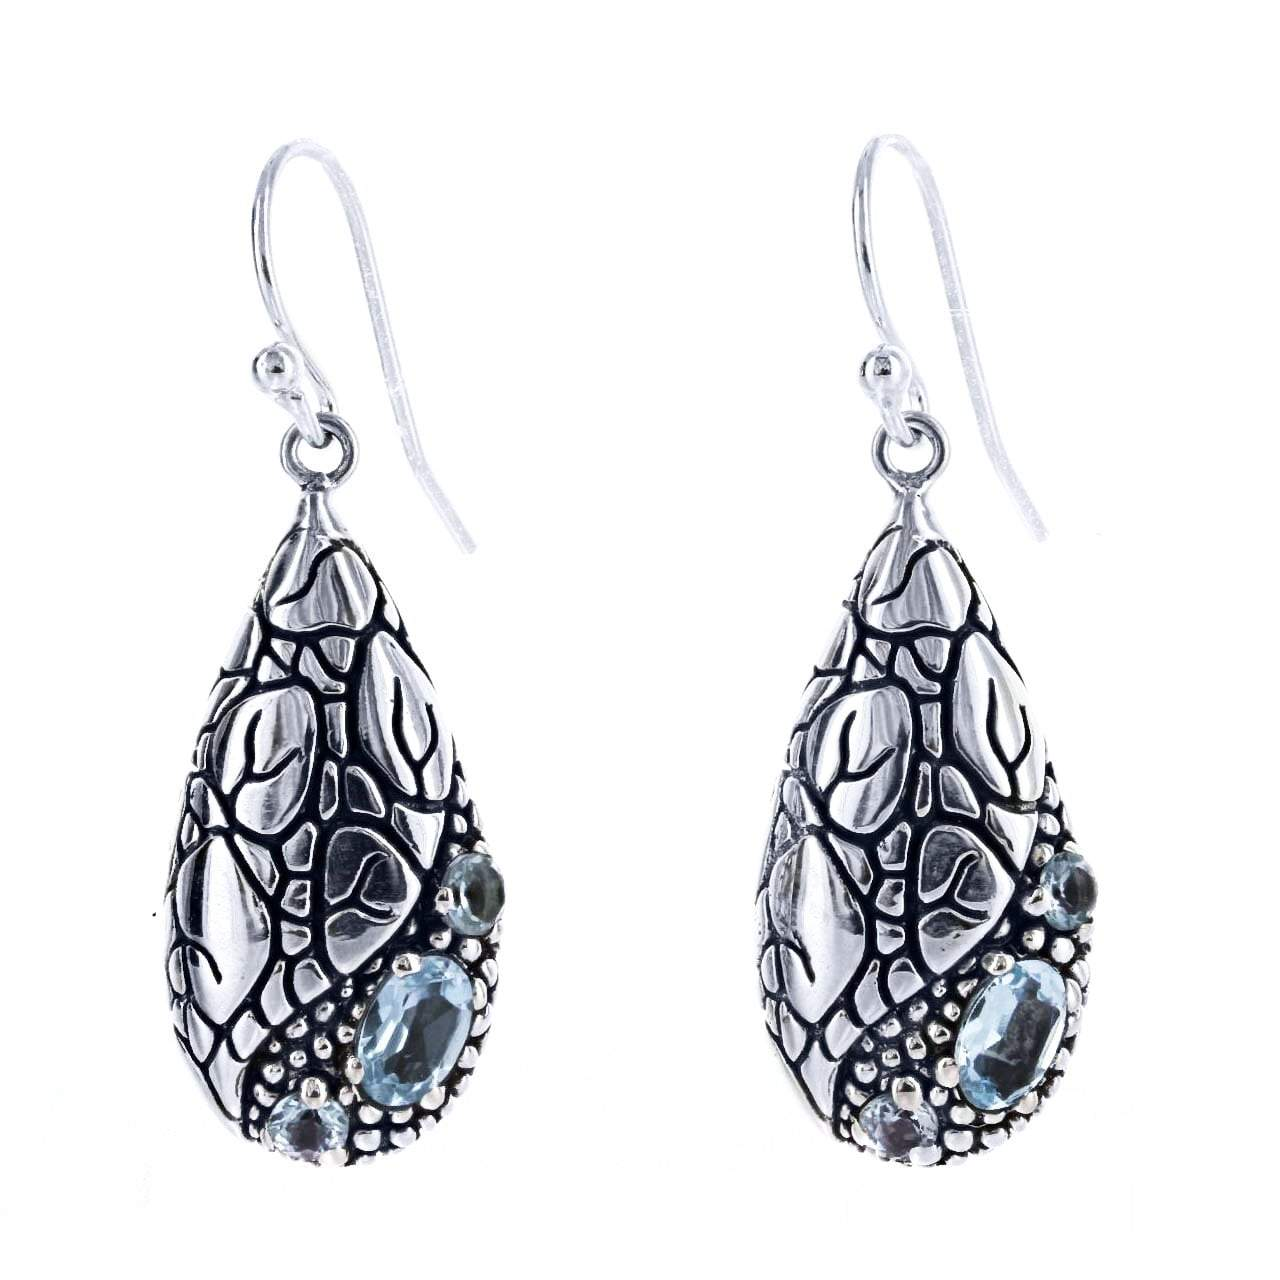 David Beck Bali Teardrop Earring in Sterling Silver and Blue Topaz